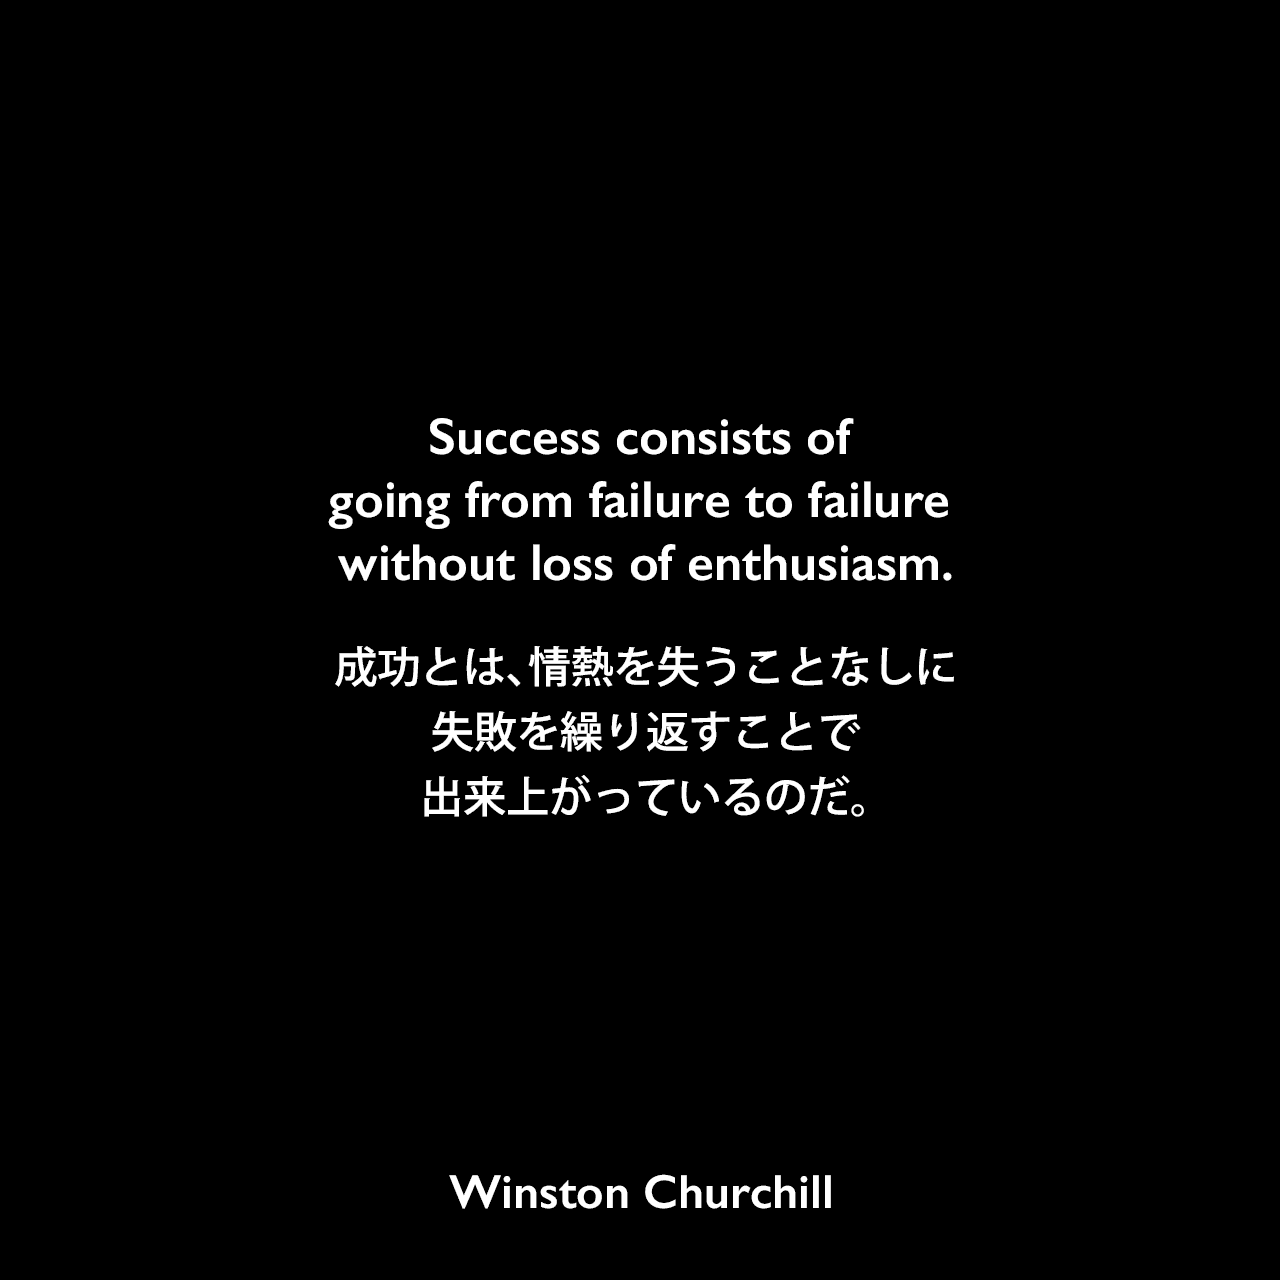 Success consists of going from failure to failure without loss of enthusiasm.成功とは、情熱を失うことなしに失敗を繰り返すことで出来上がっているのだ。